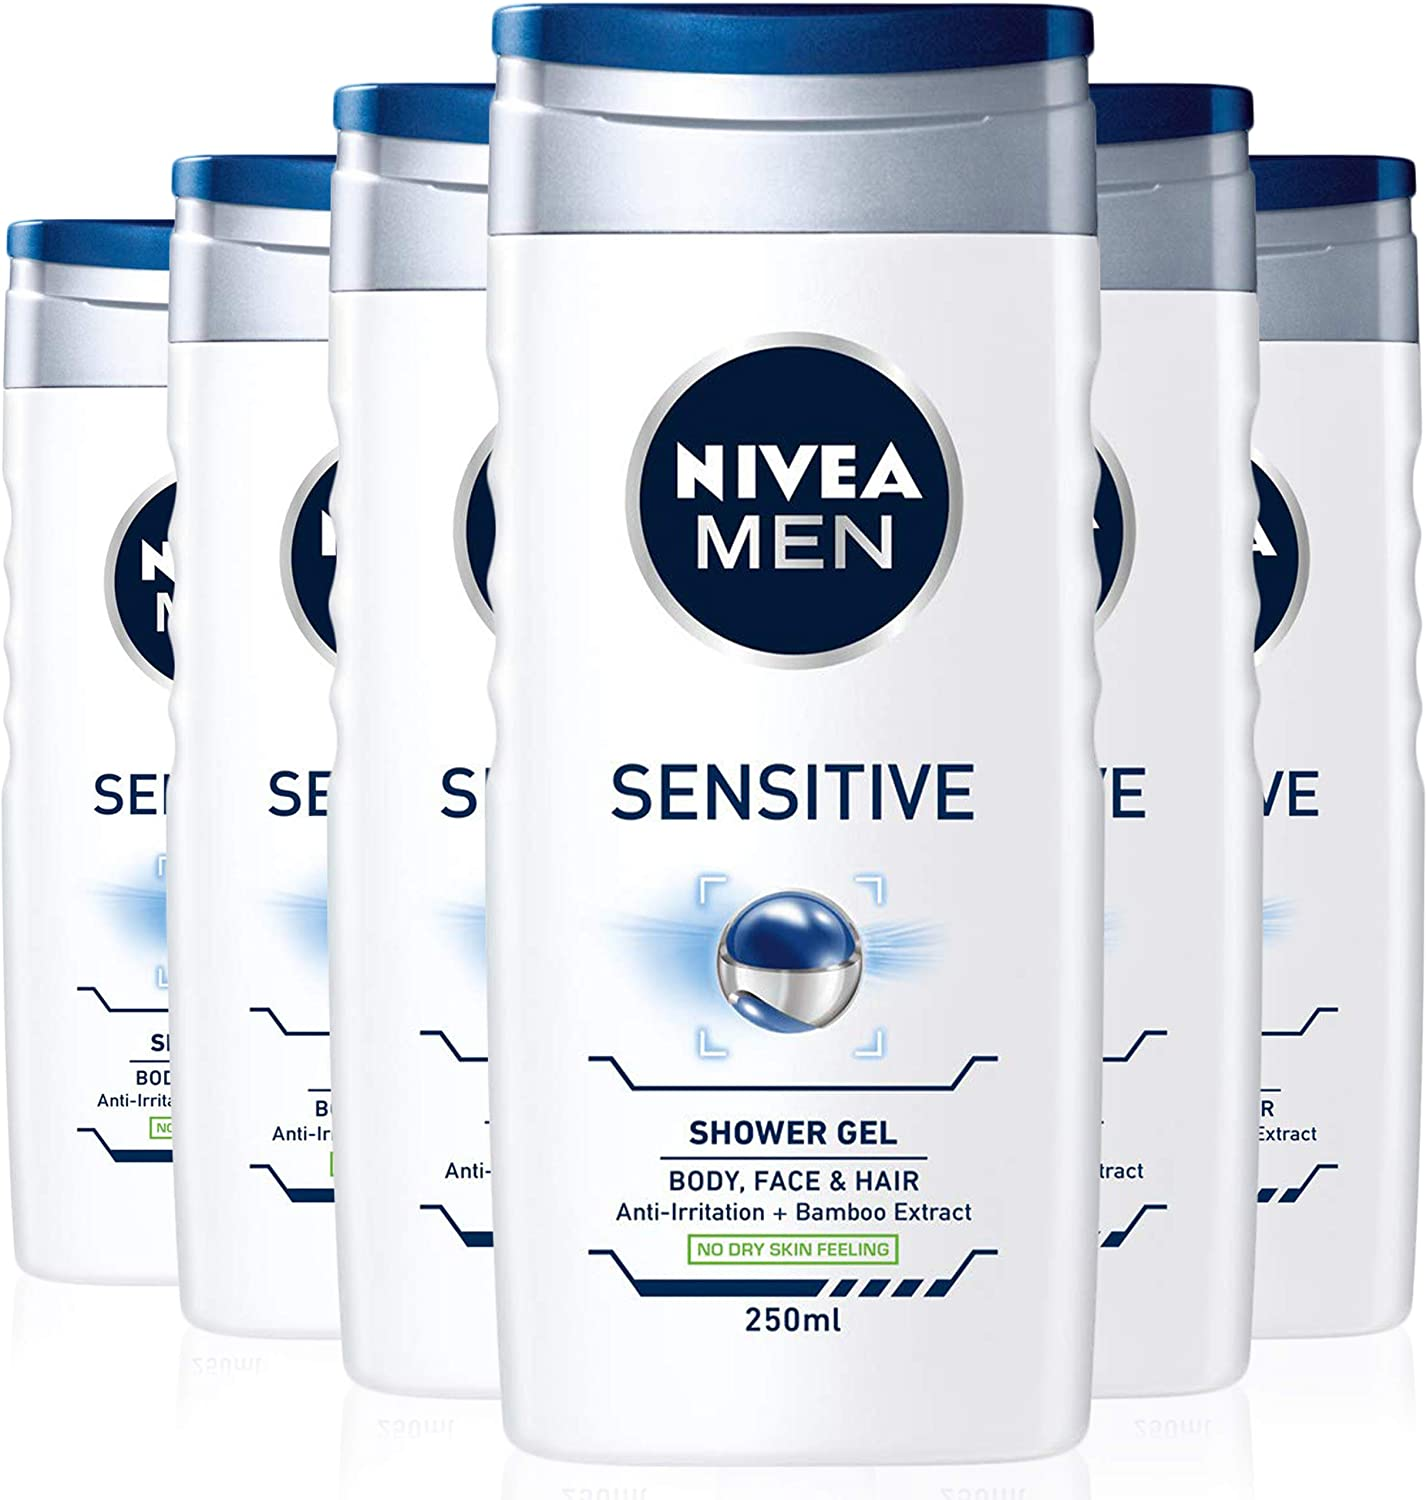 NIVEA MEN Sensitive Shower Gel Pack of 6 – Only £6!